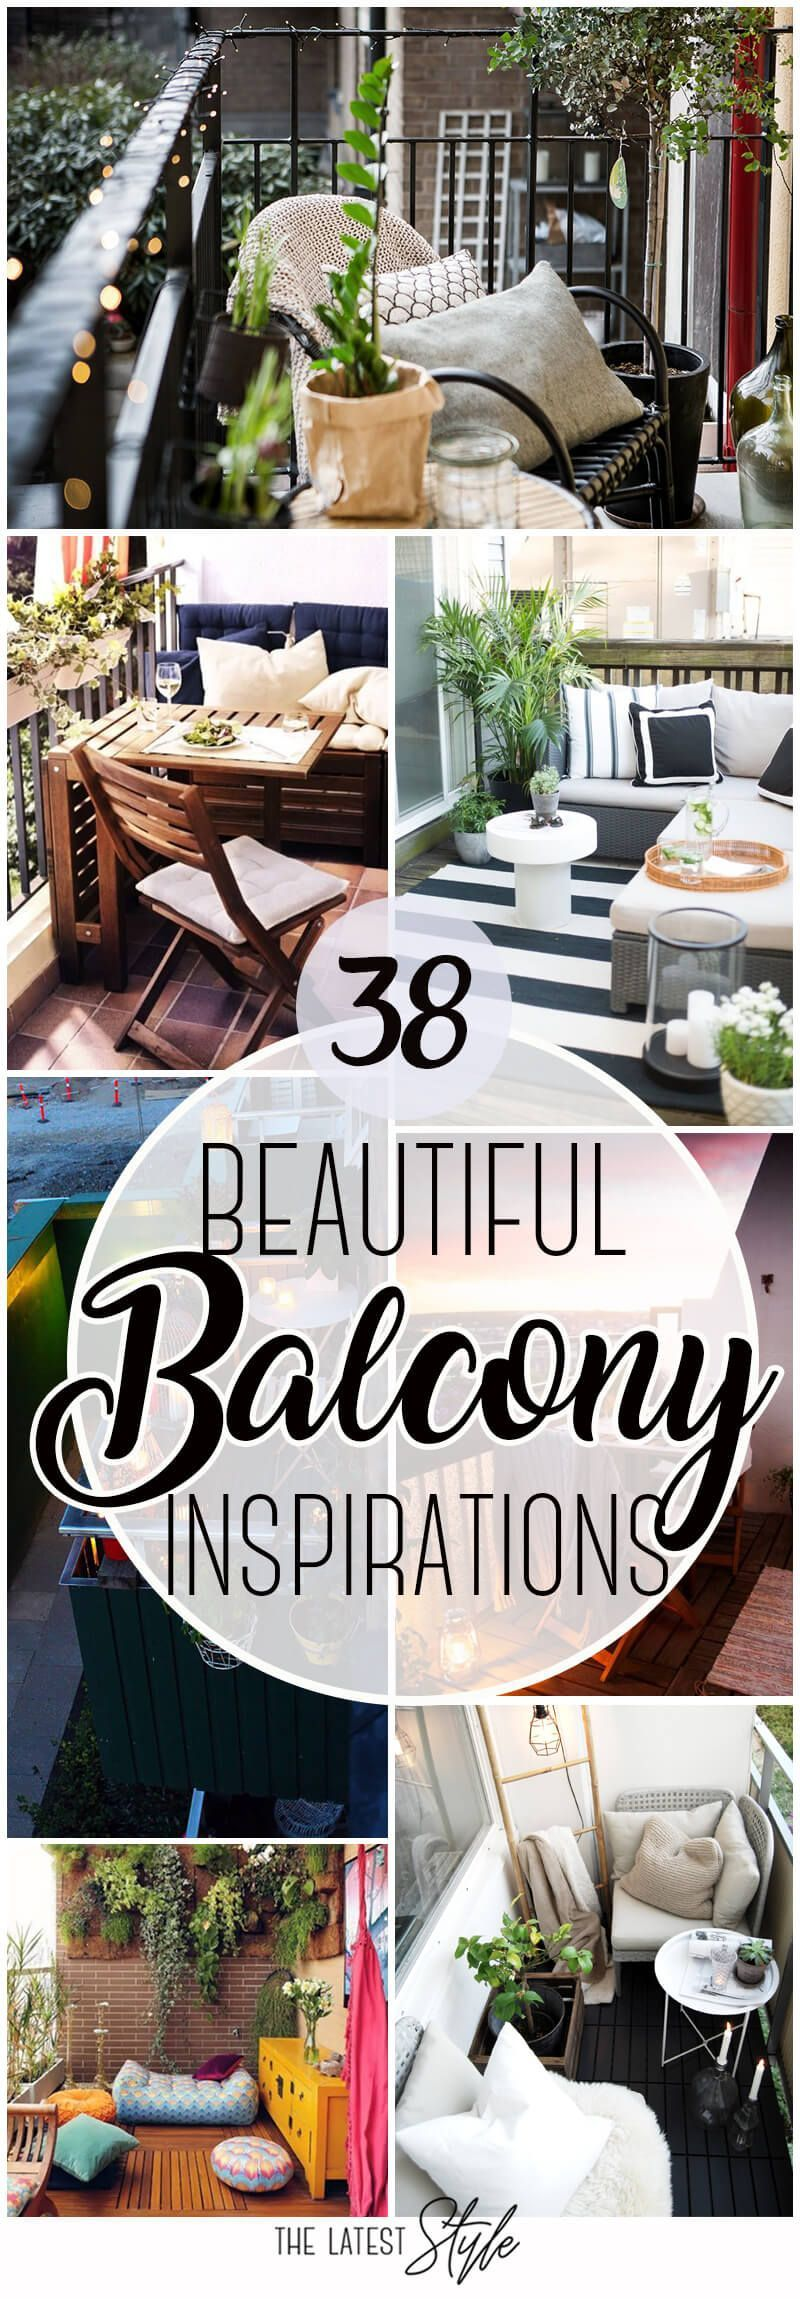 38 Beautiful Balcony Inspirations #wohnungbalkondekoration